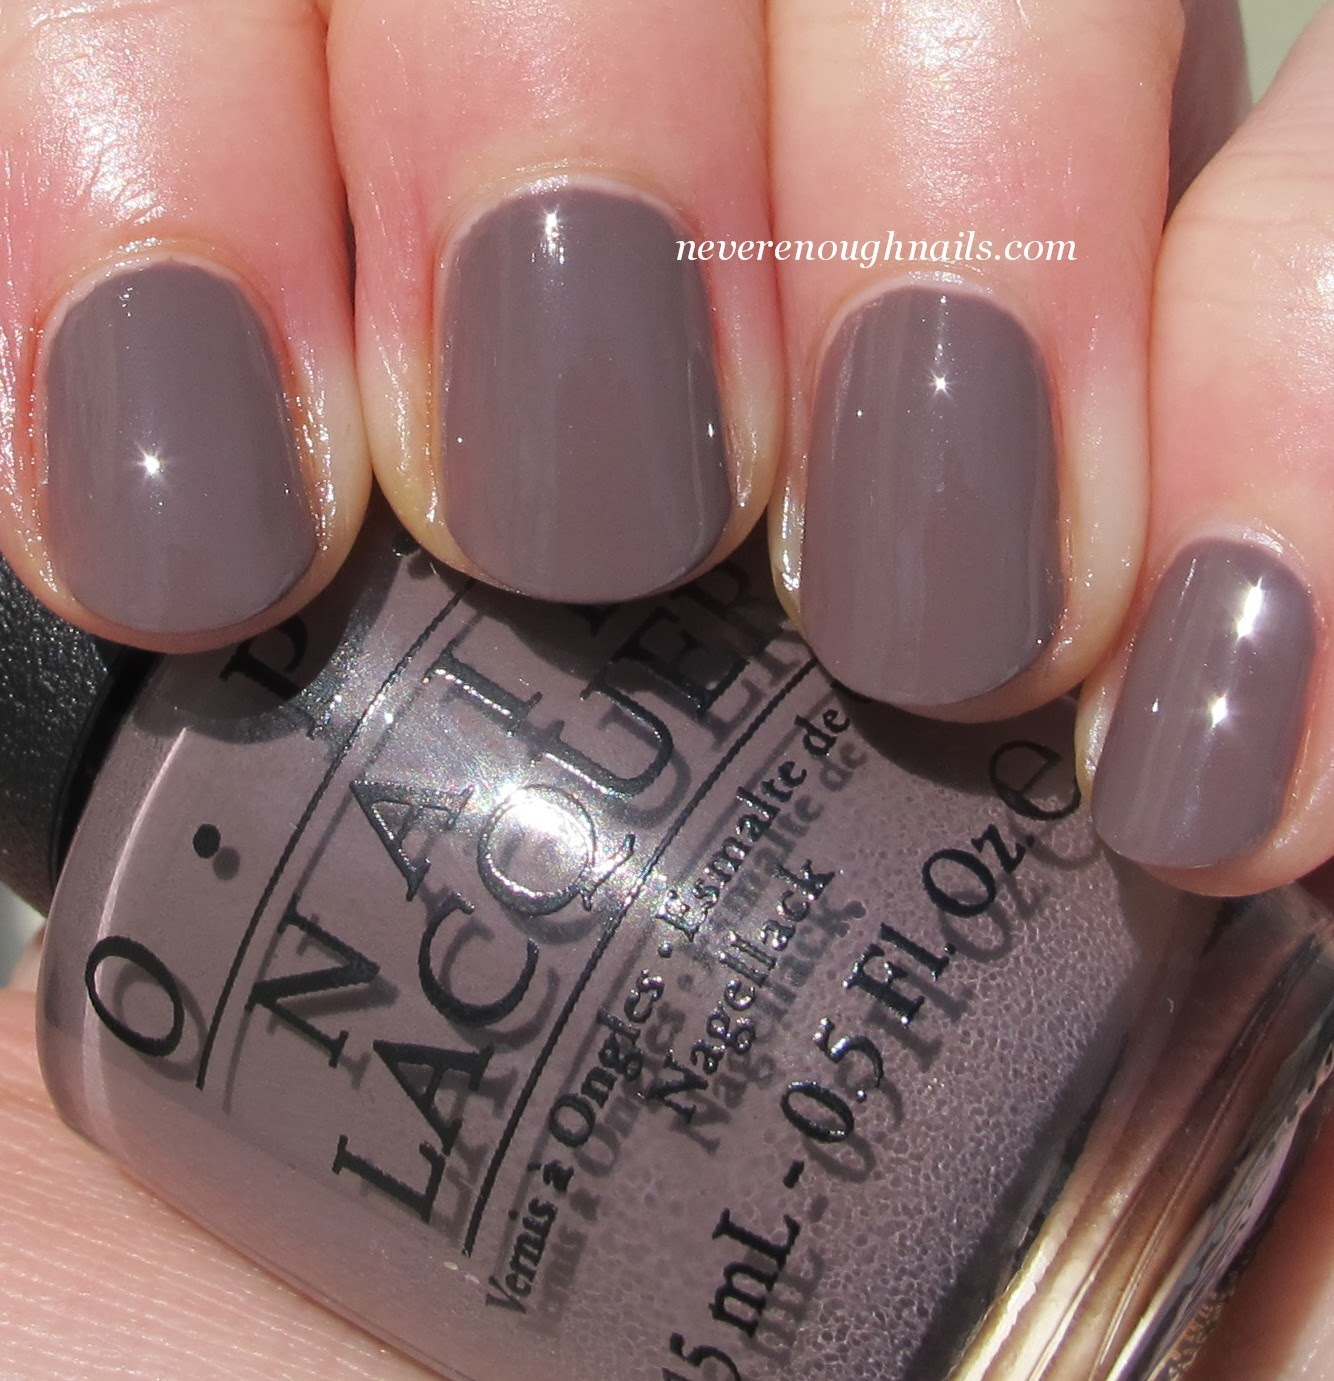 Opi I Sao Paulo Over There Is A Purple Y Taupe Creme With Hints Of Gray Feel Like This Could Be Close To Some Other Opis